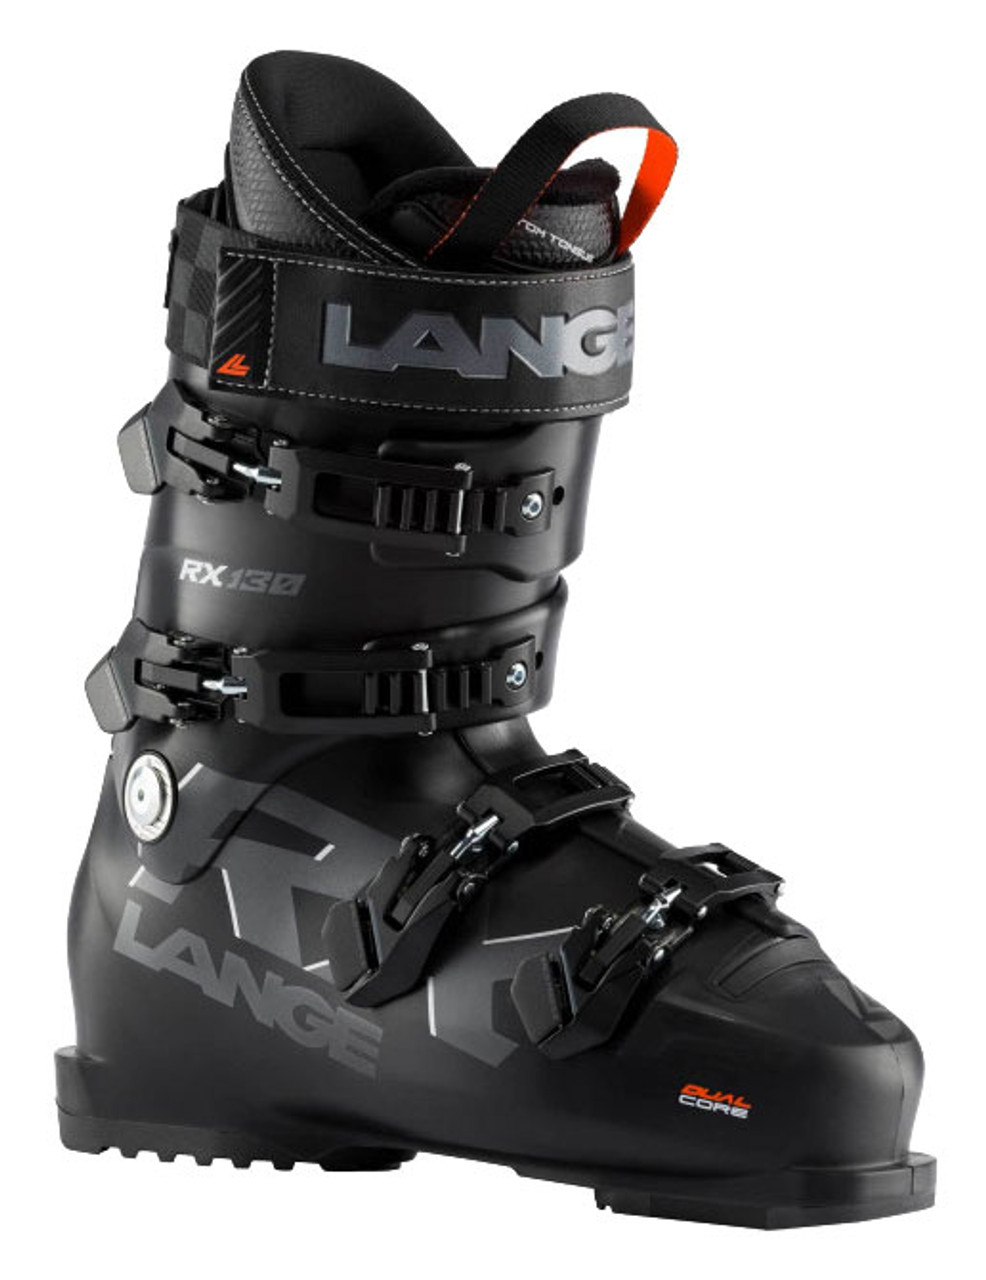 sneakers clearance prices outlet store Lange RX 130 MV